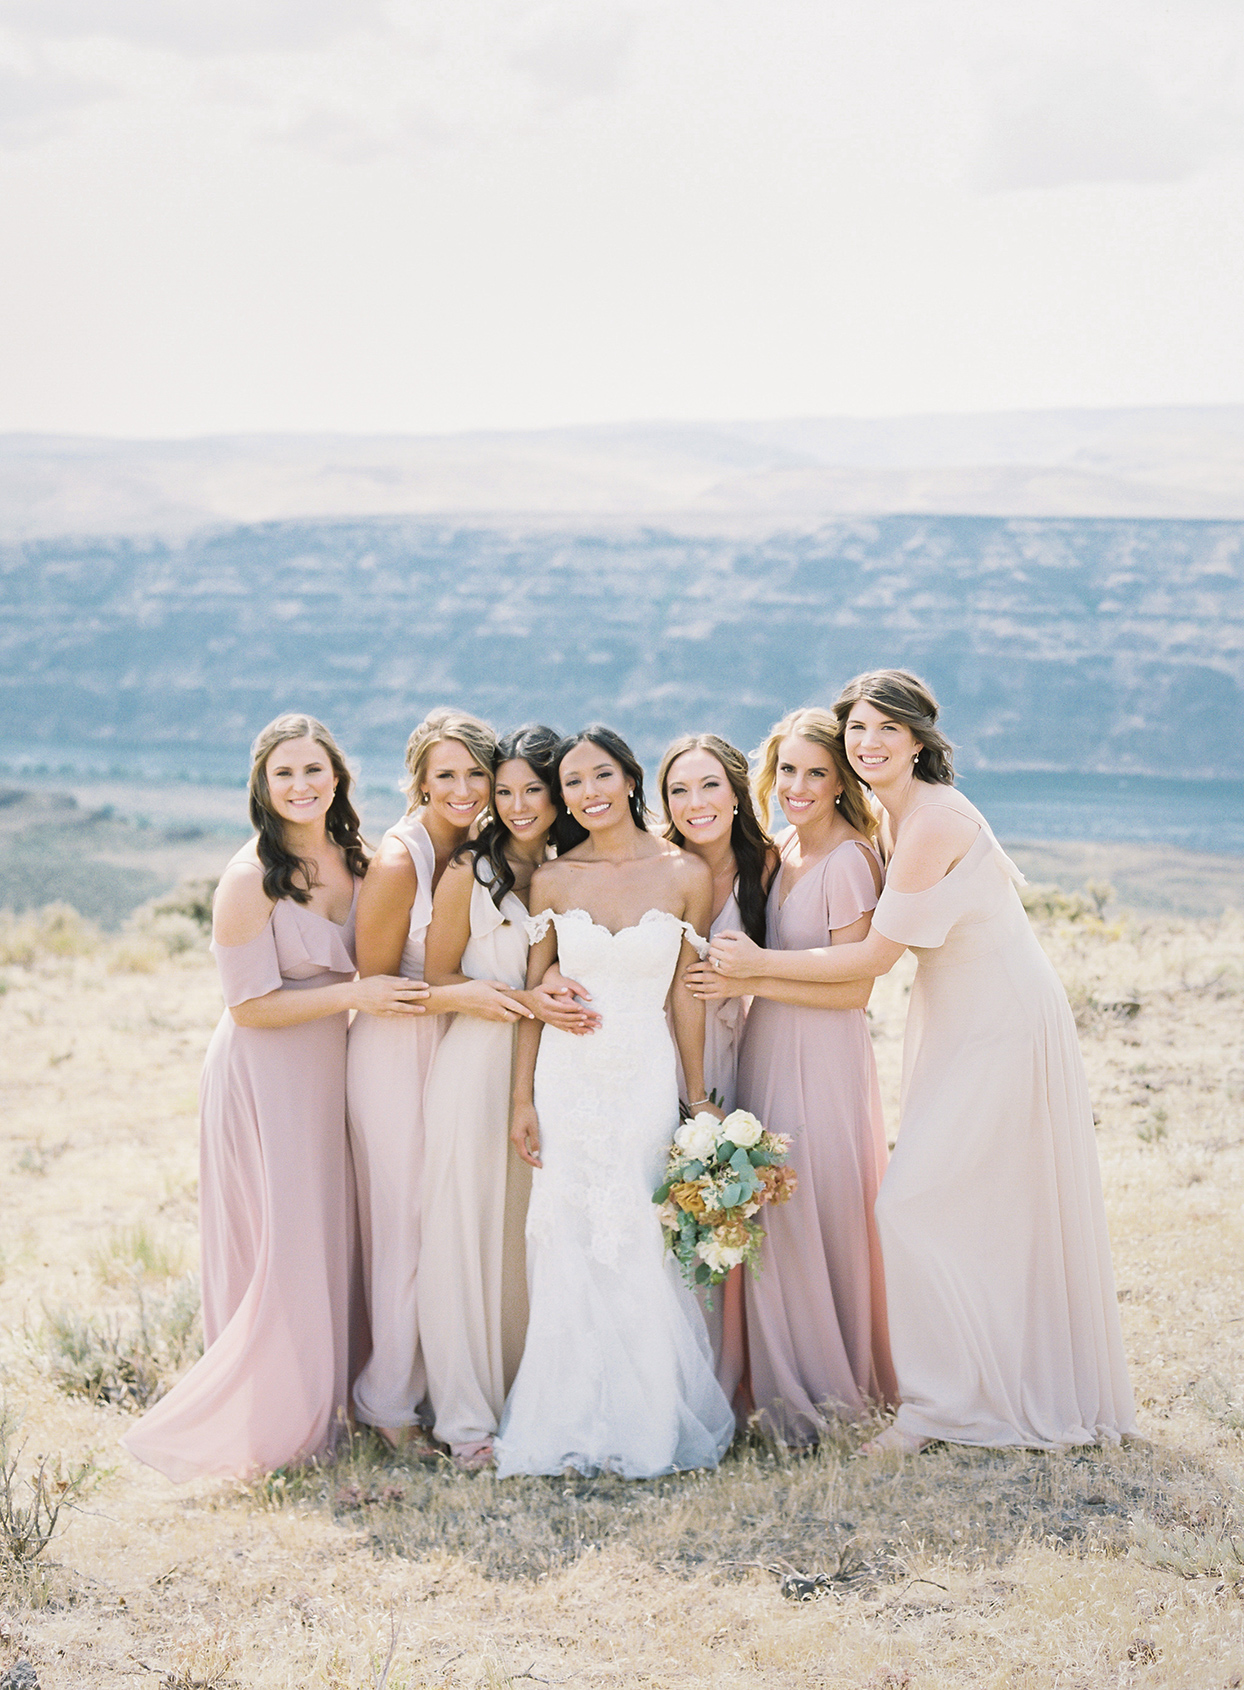 micaela curtis wedding bridesmaids in field